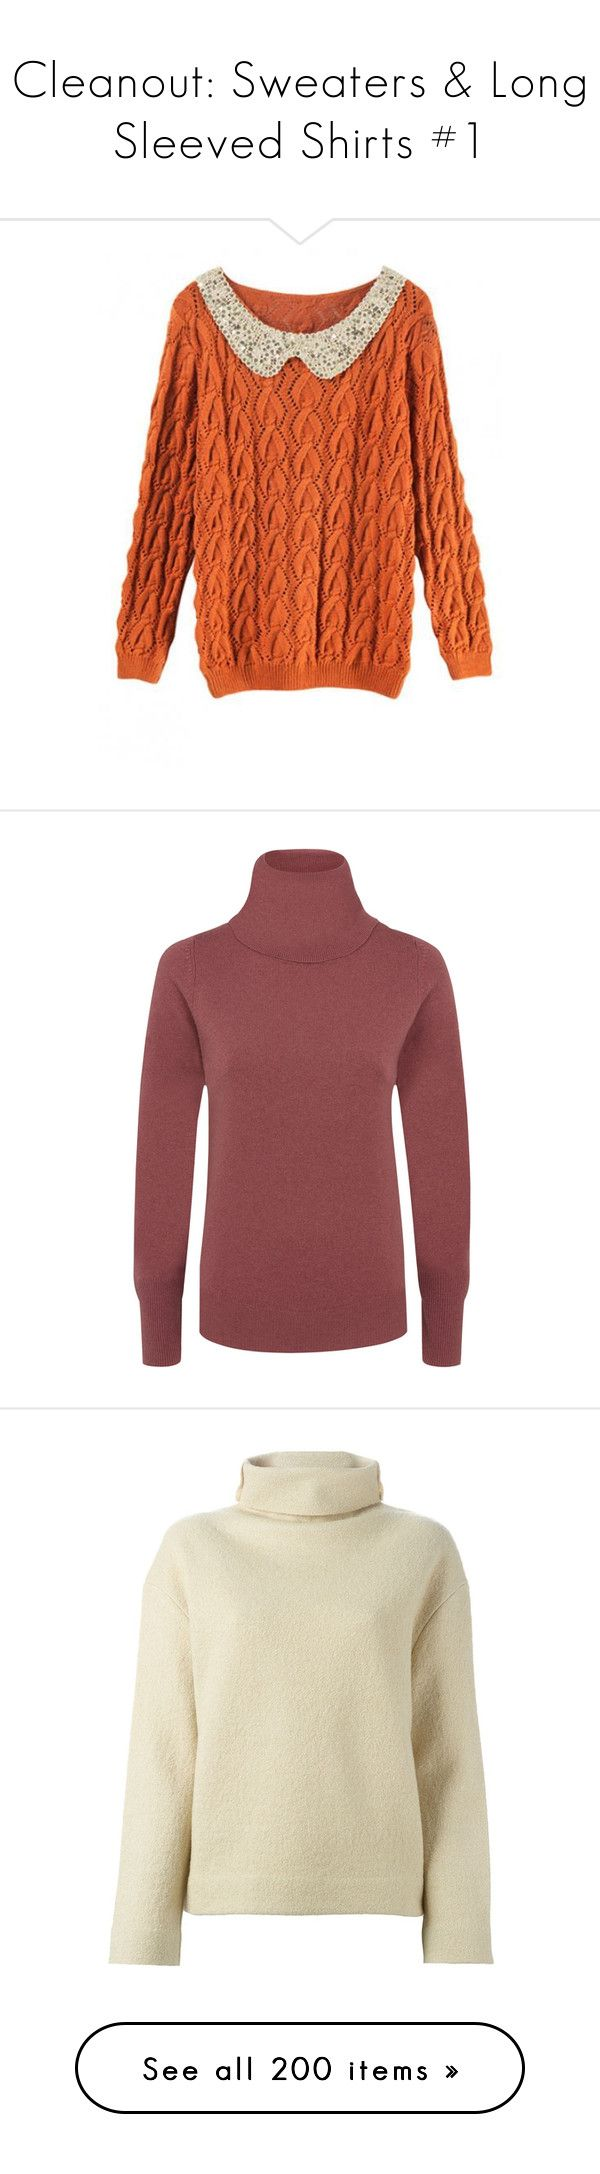 """""""Cleanout: Sweaters & Long Sleeved Shirts #1"""" by mscody ❤ liked on Polyvore featuring tops, sweaters, shirts, orange shirt, orange top, orange sweater, twist shirt, sequin top, dark rose and slouchy sweater"""